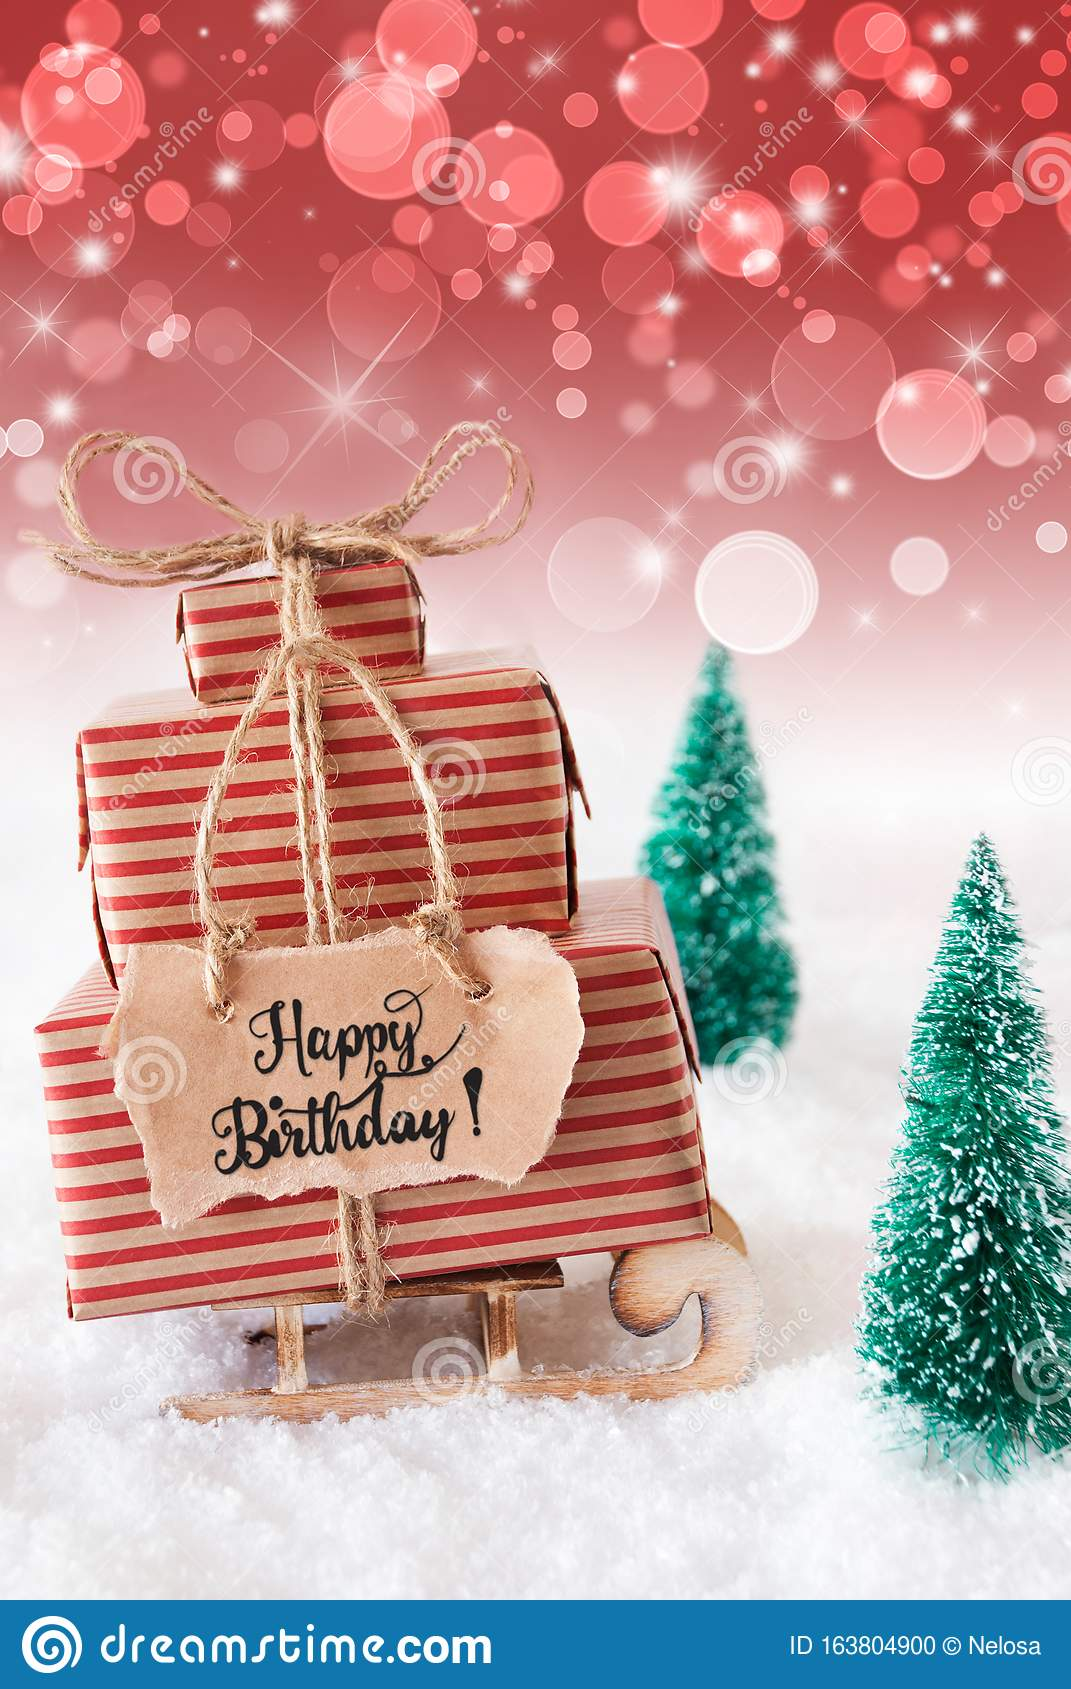 Sled Snow Present Happy Birthday Red Background Stock Photo Image Of Anniversary Merry 163804900